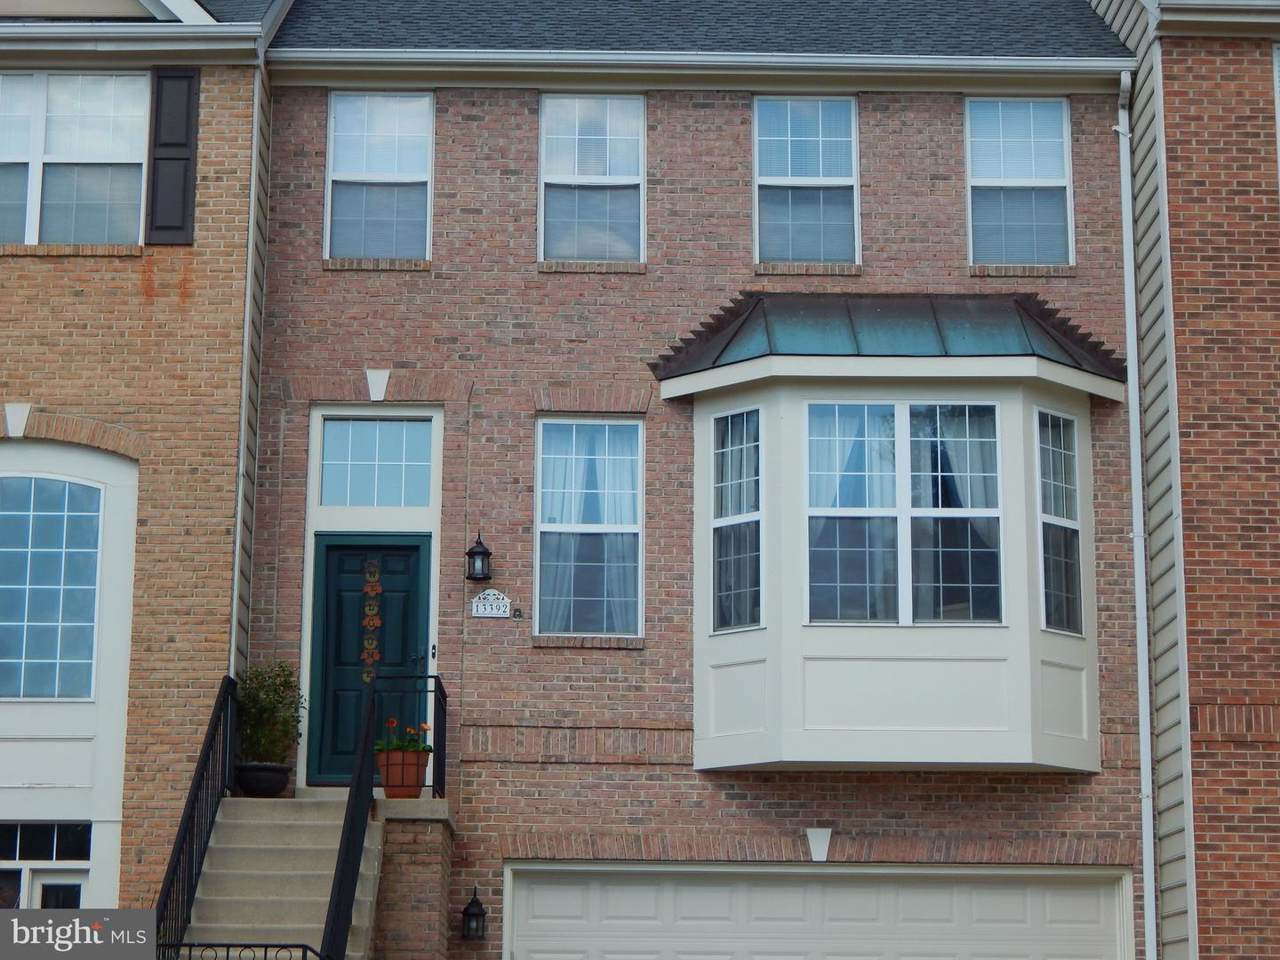 13392 Dogues Terrace - Photo 1